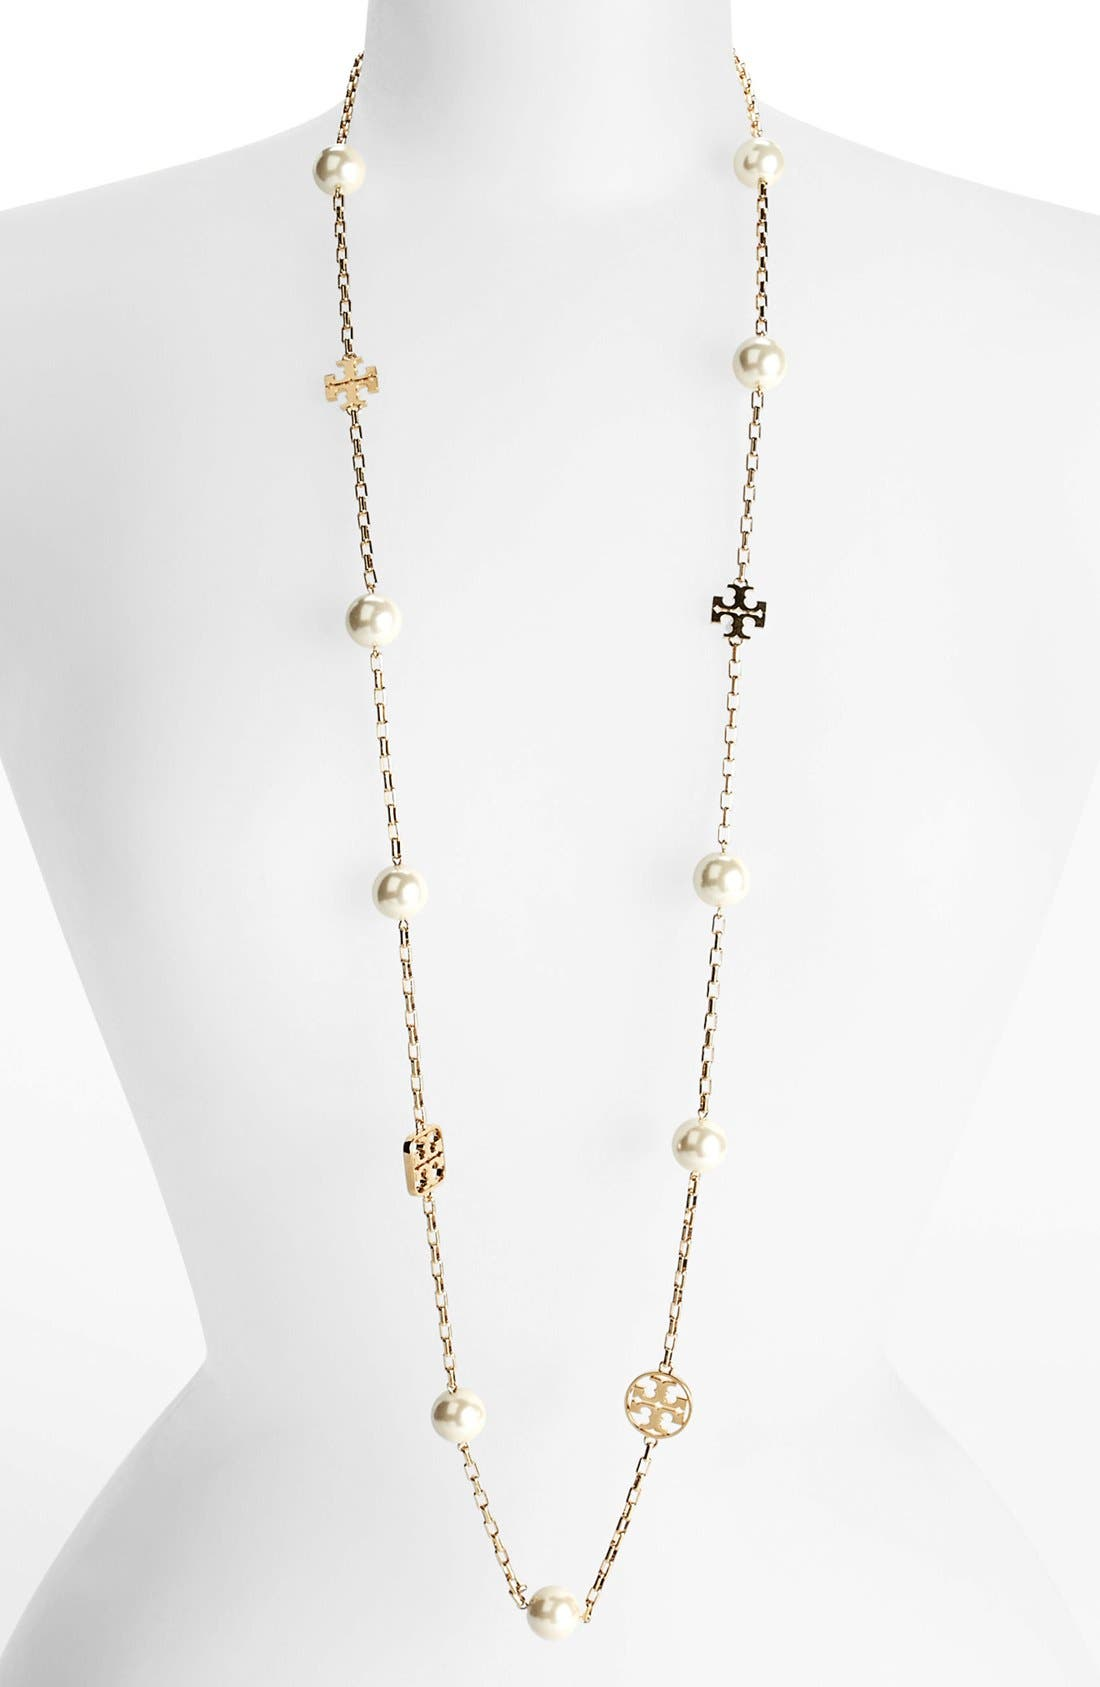 Alternate Image 1 Selected - Tory Burch 'Evie' Extra Long Station Necklace